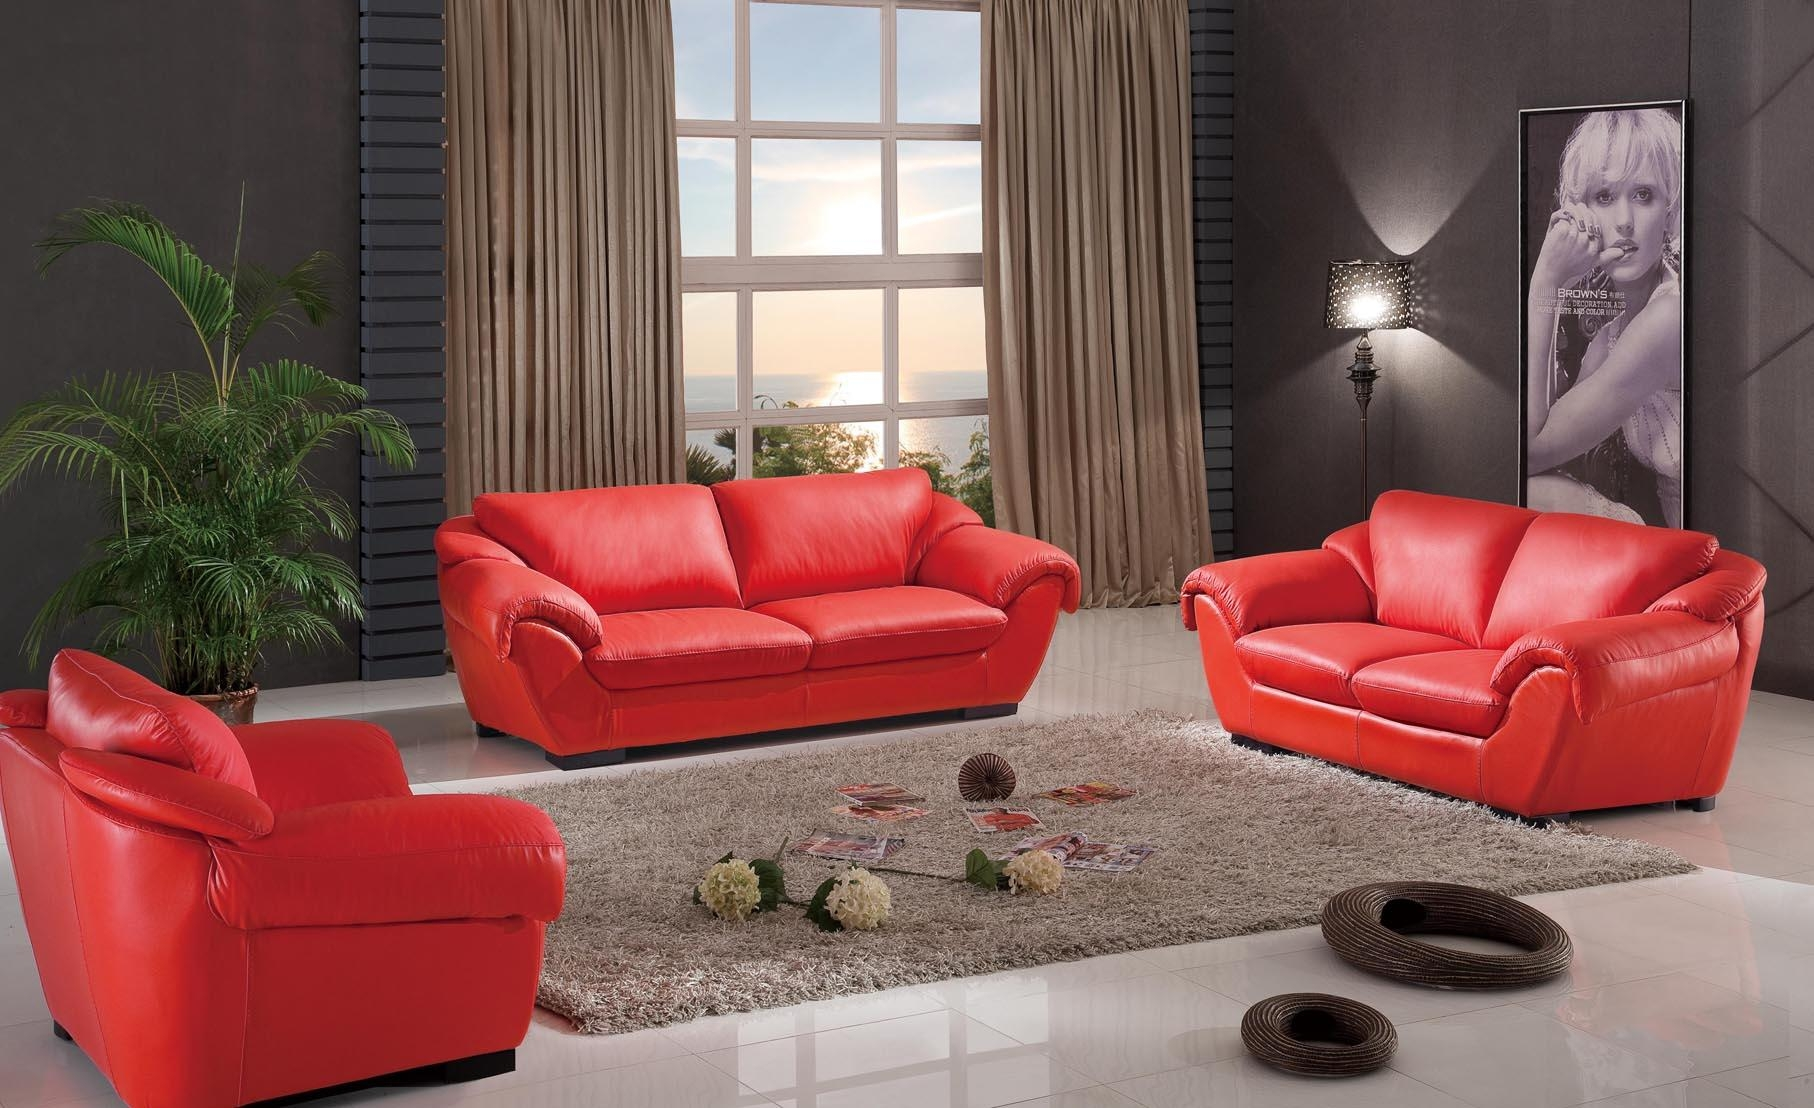 Colorful Sofas And Chairs | Tehranmix Decoration Pertaining To Red Sofas And Chairs (Image 4 of 20)